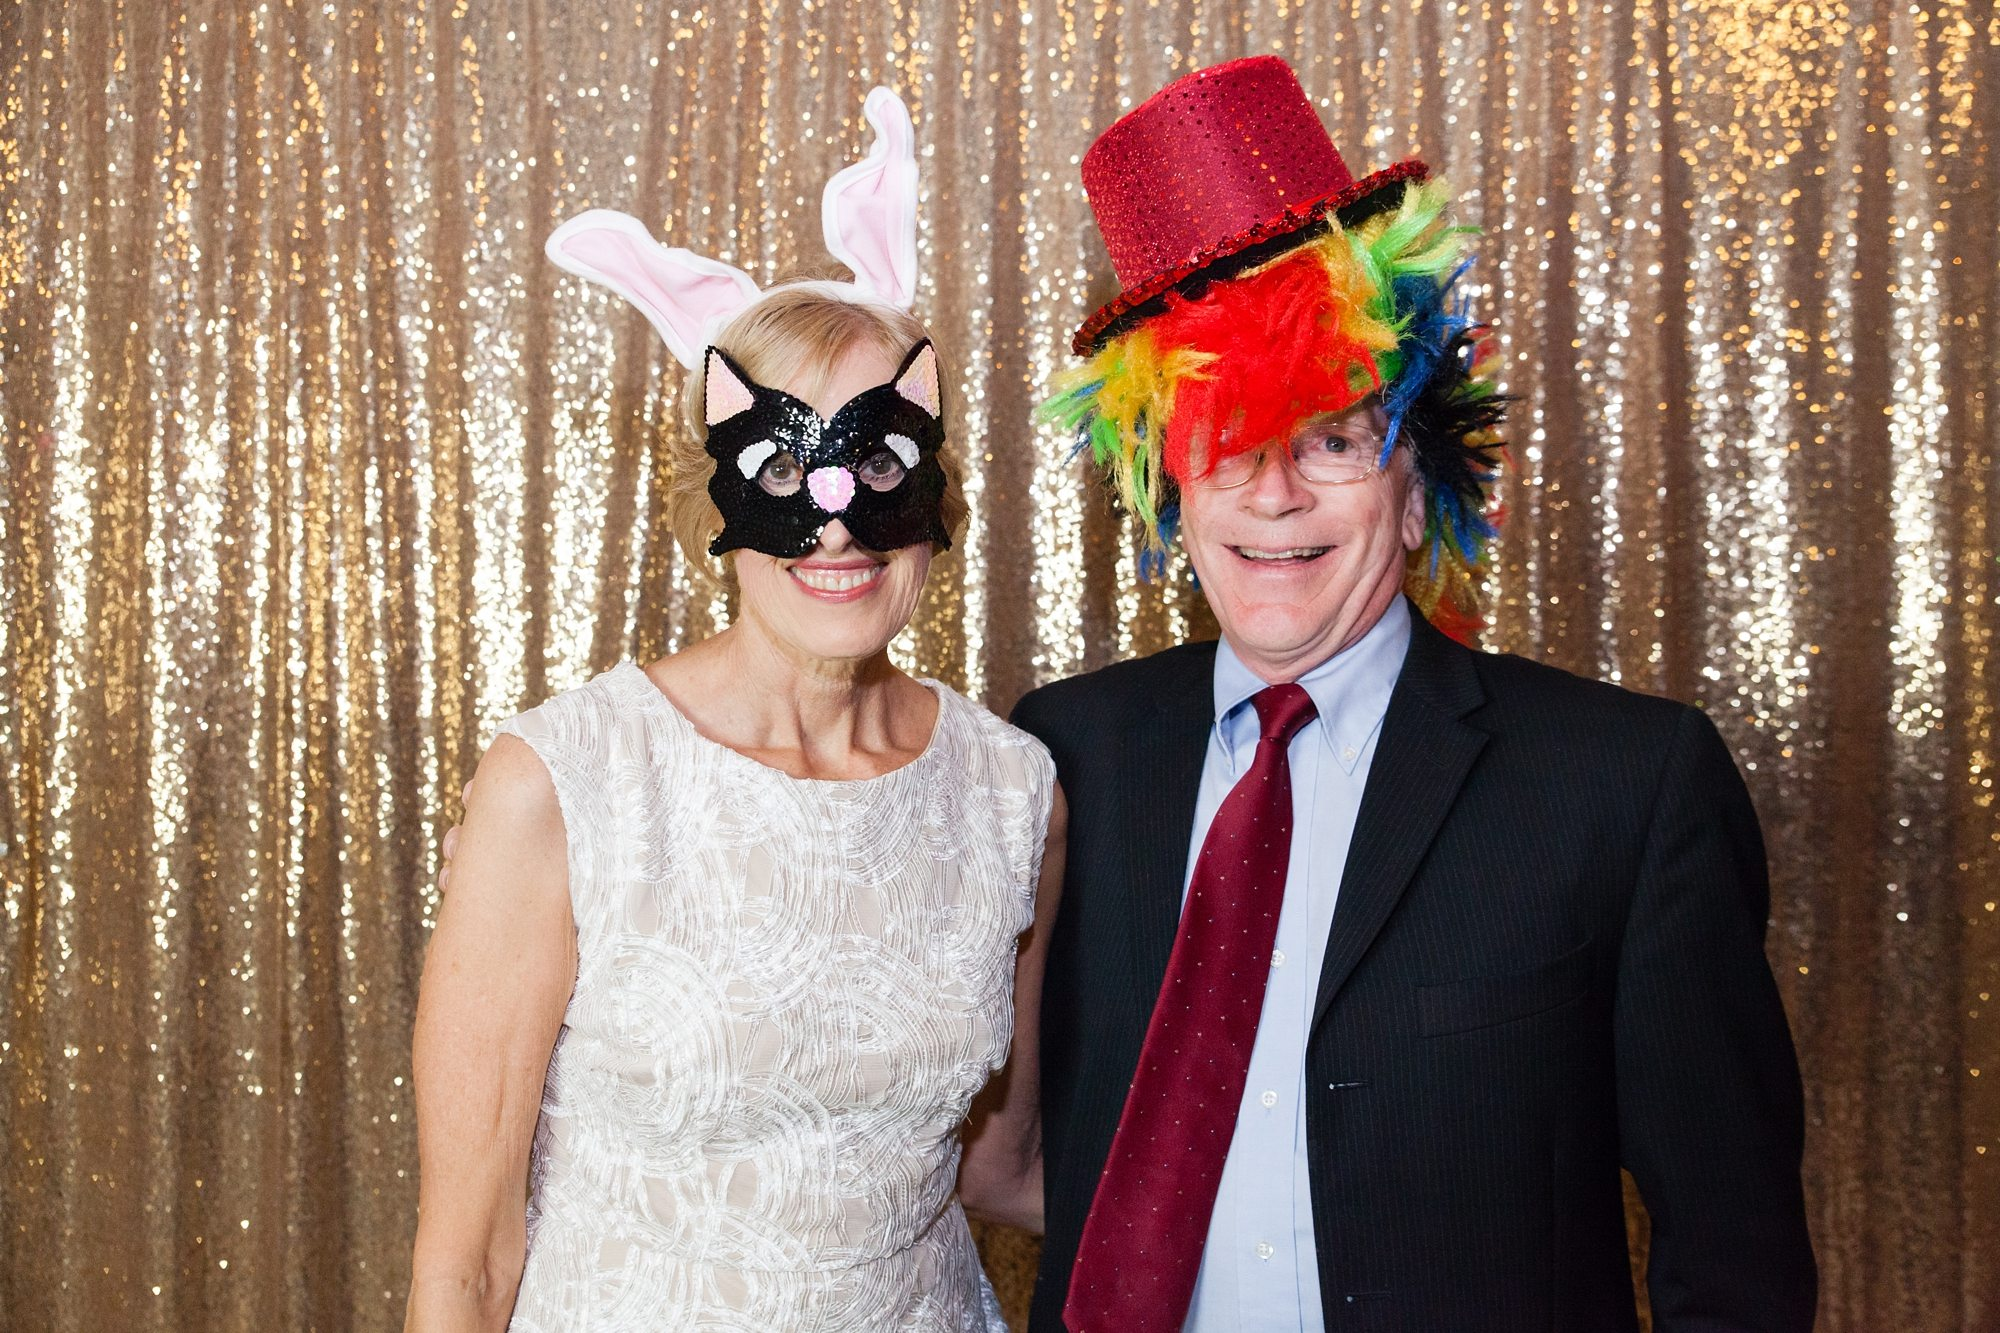 old couple wearing silly hat in party outfit photobooth